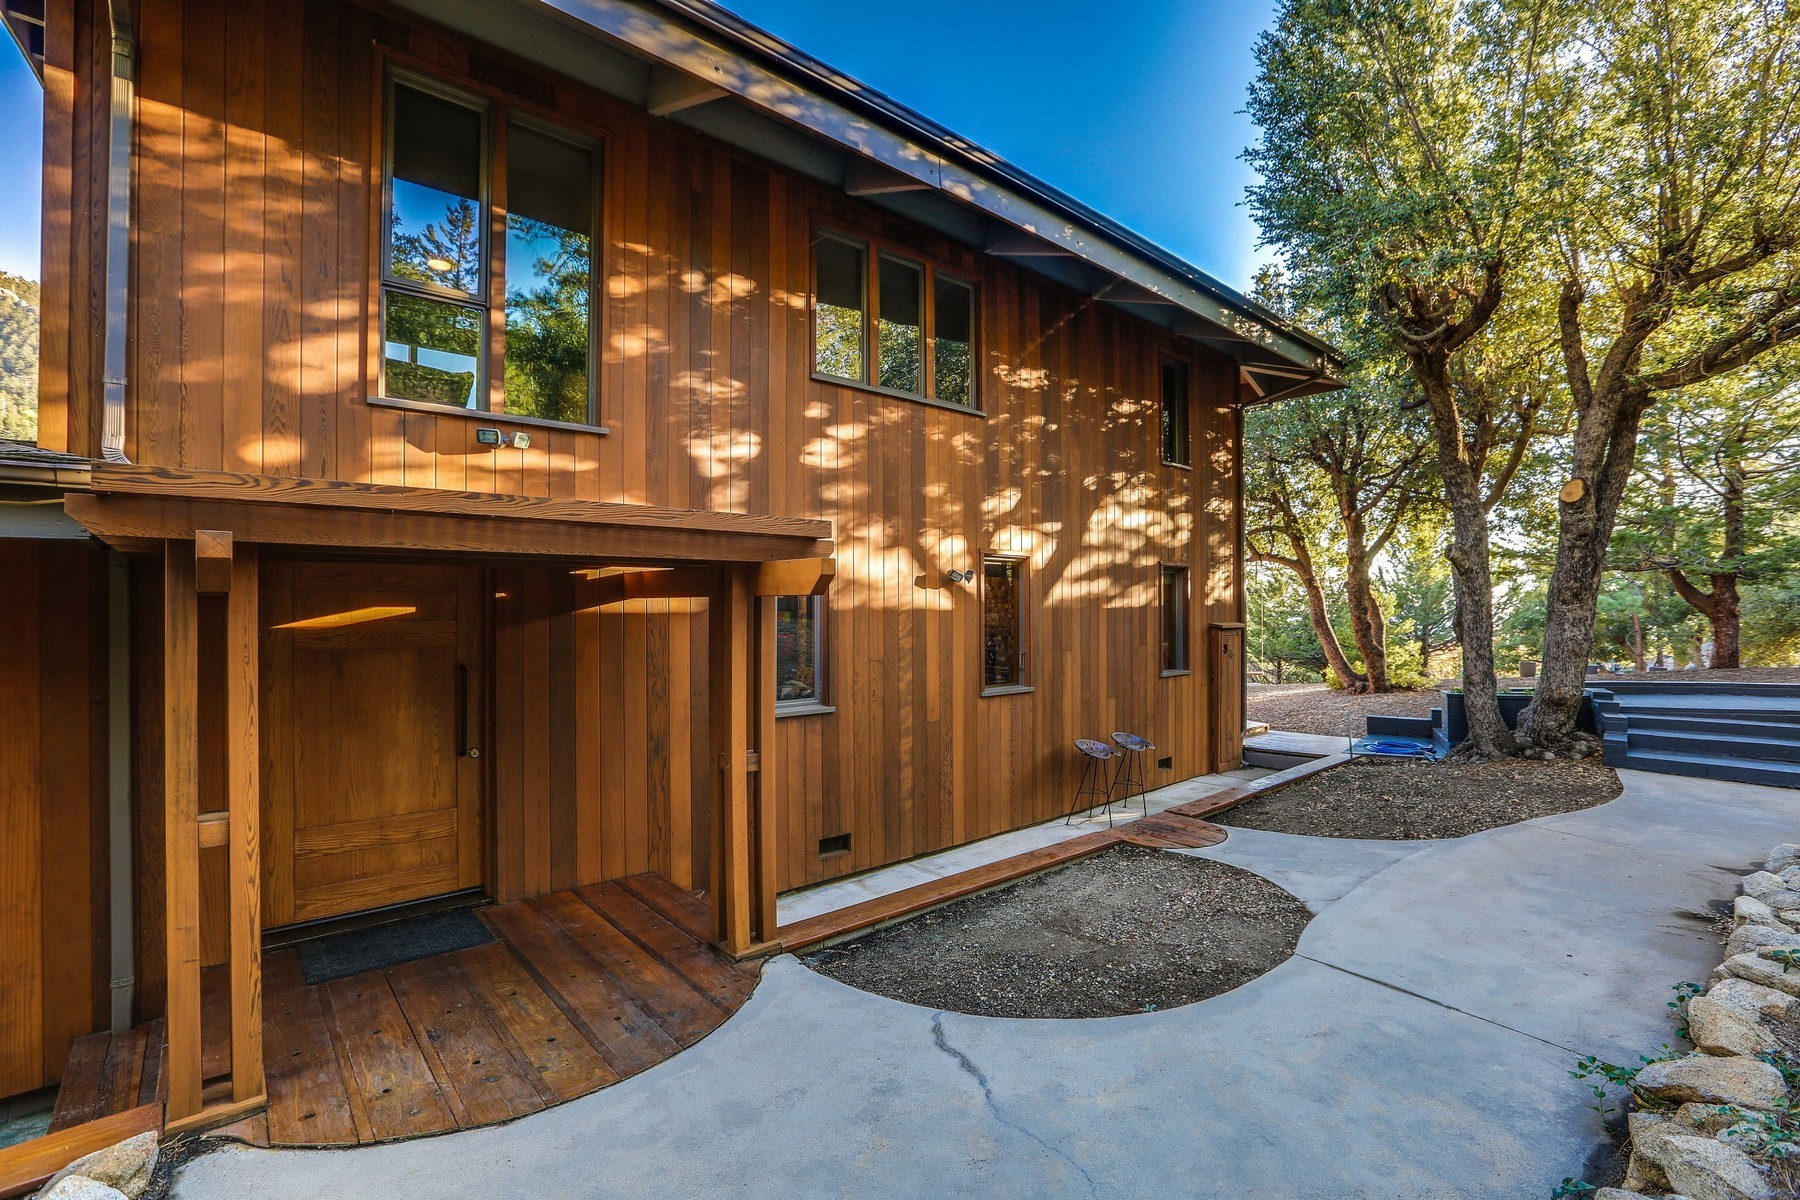 Single Family Home for Sale at 55051 Forest Haven Idyllwild, California, 92549 United States